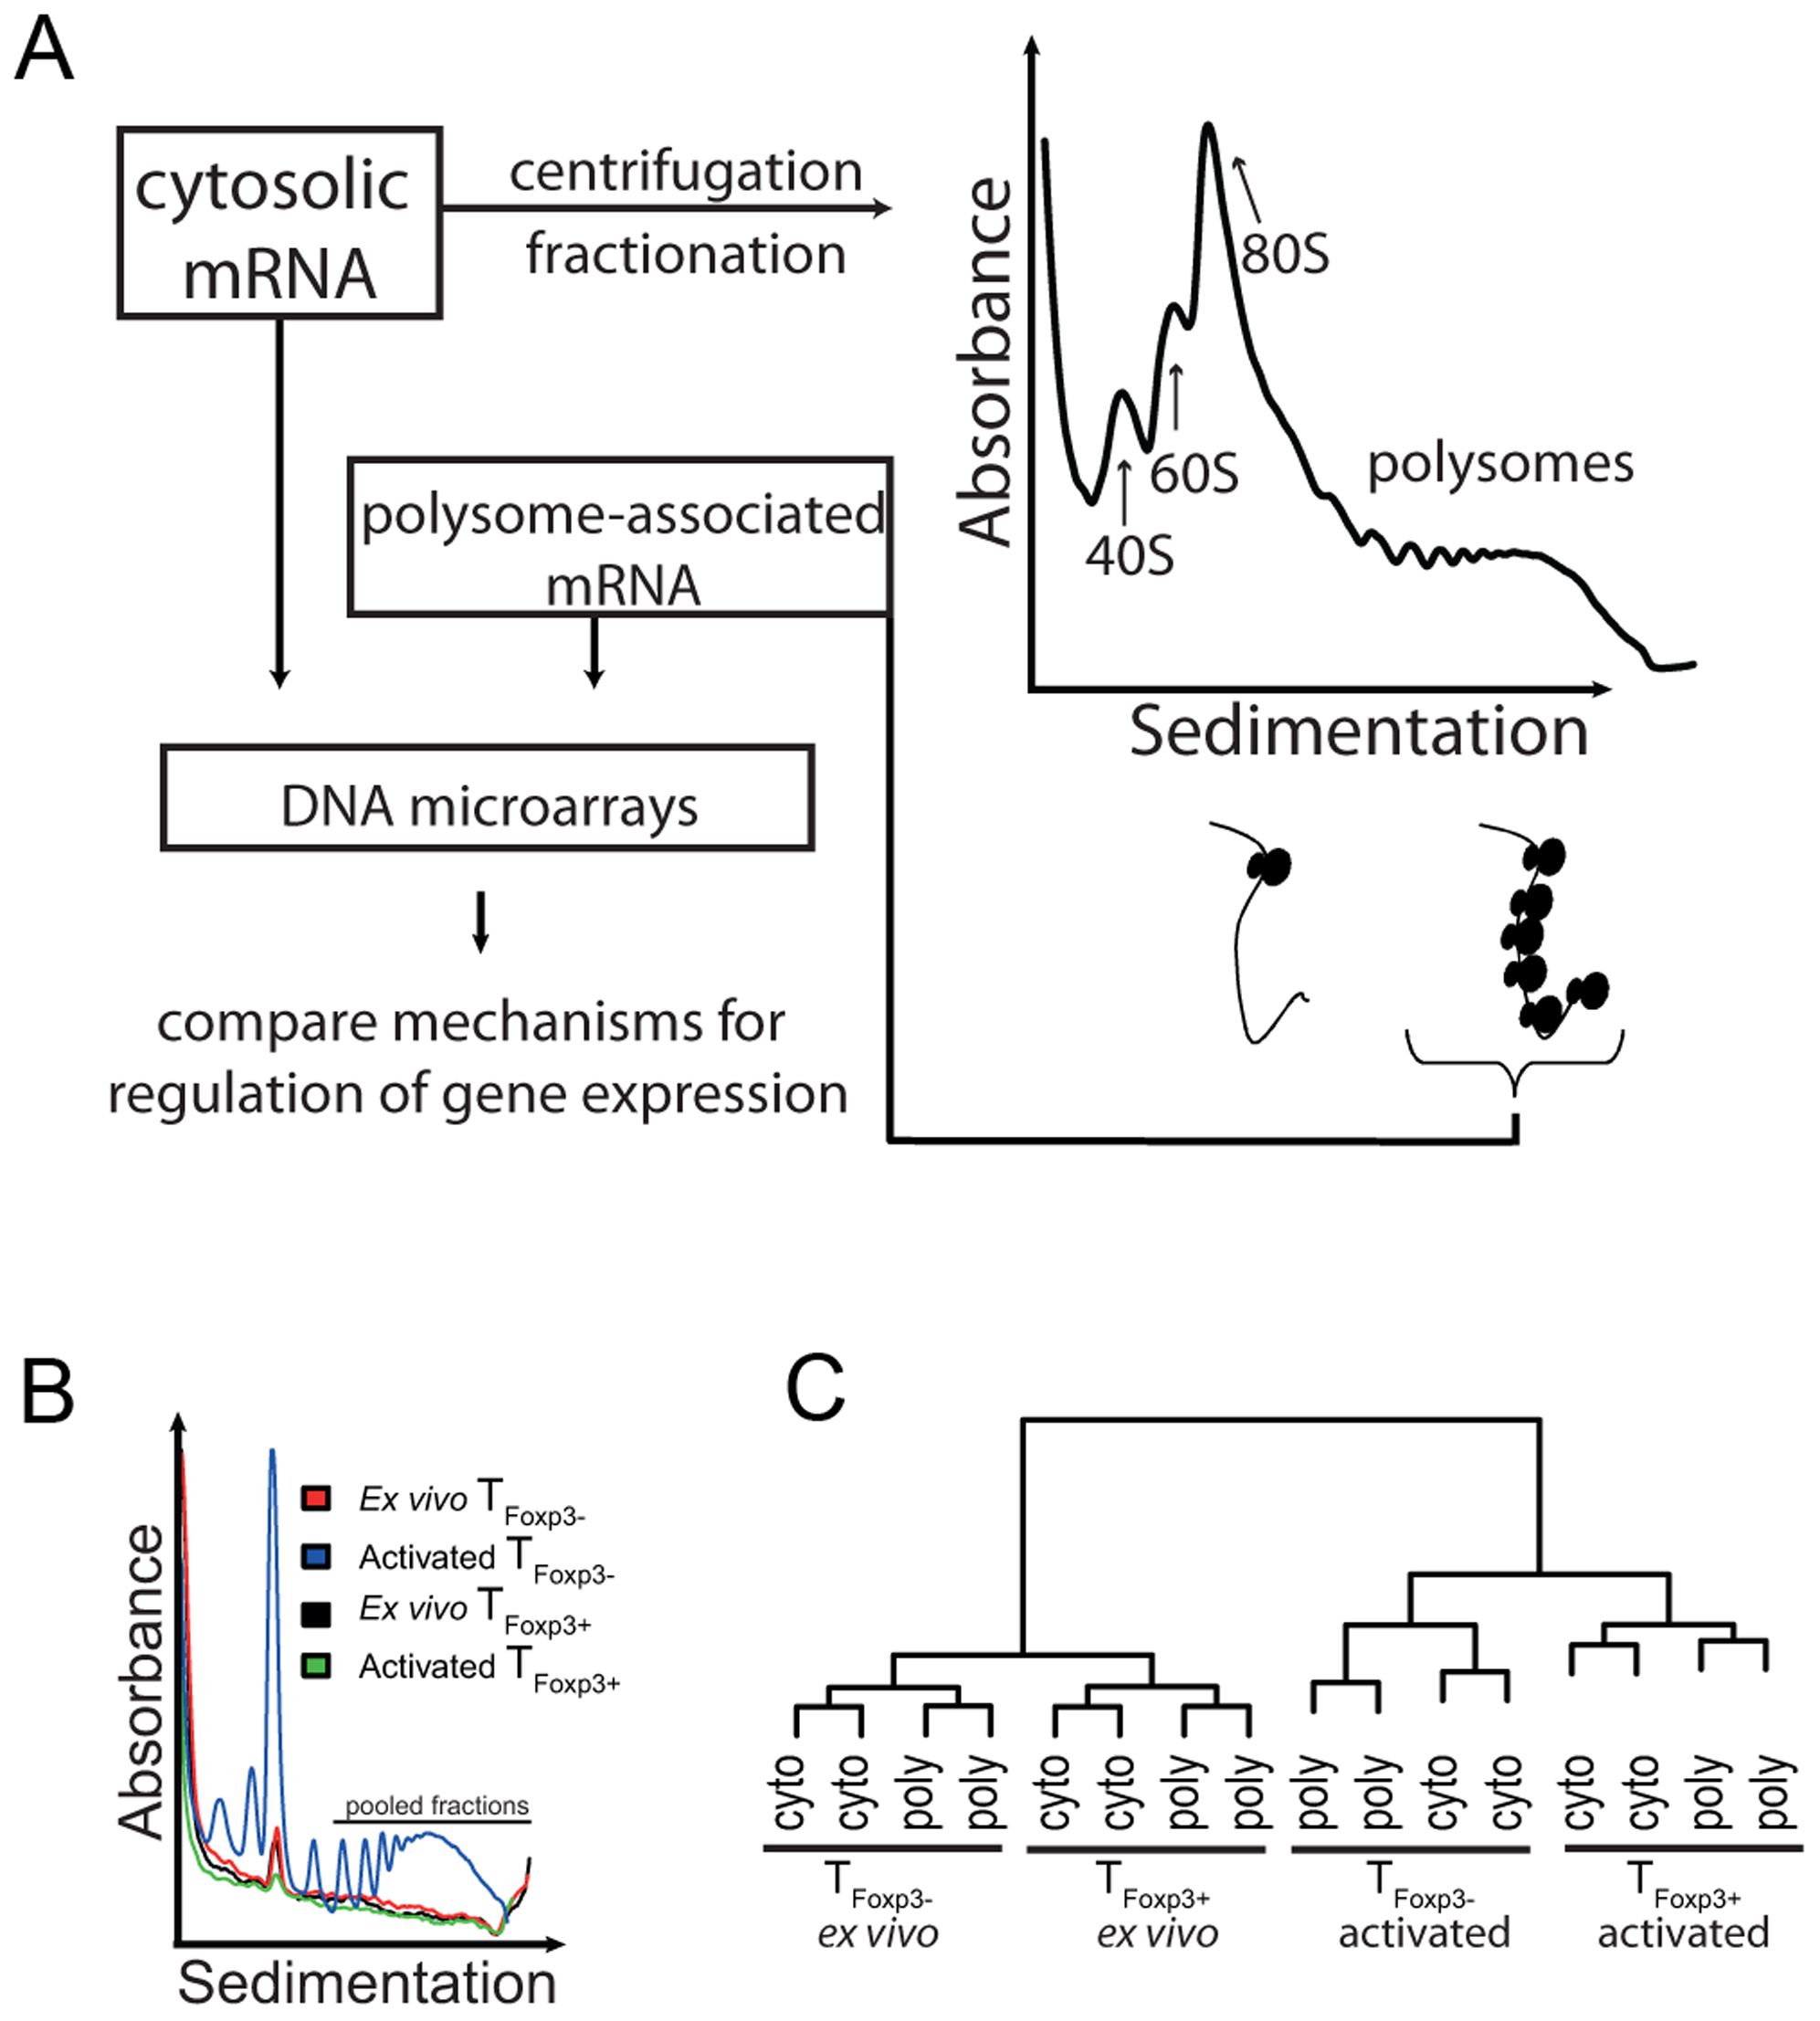 Genome-wide analysis of translationally regulated mRNAs in primary CD4<sup>+</sup> T cell subsets.